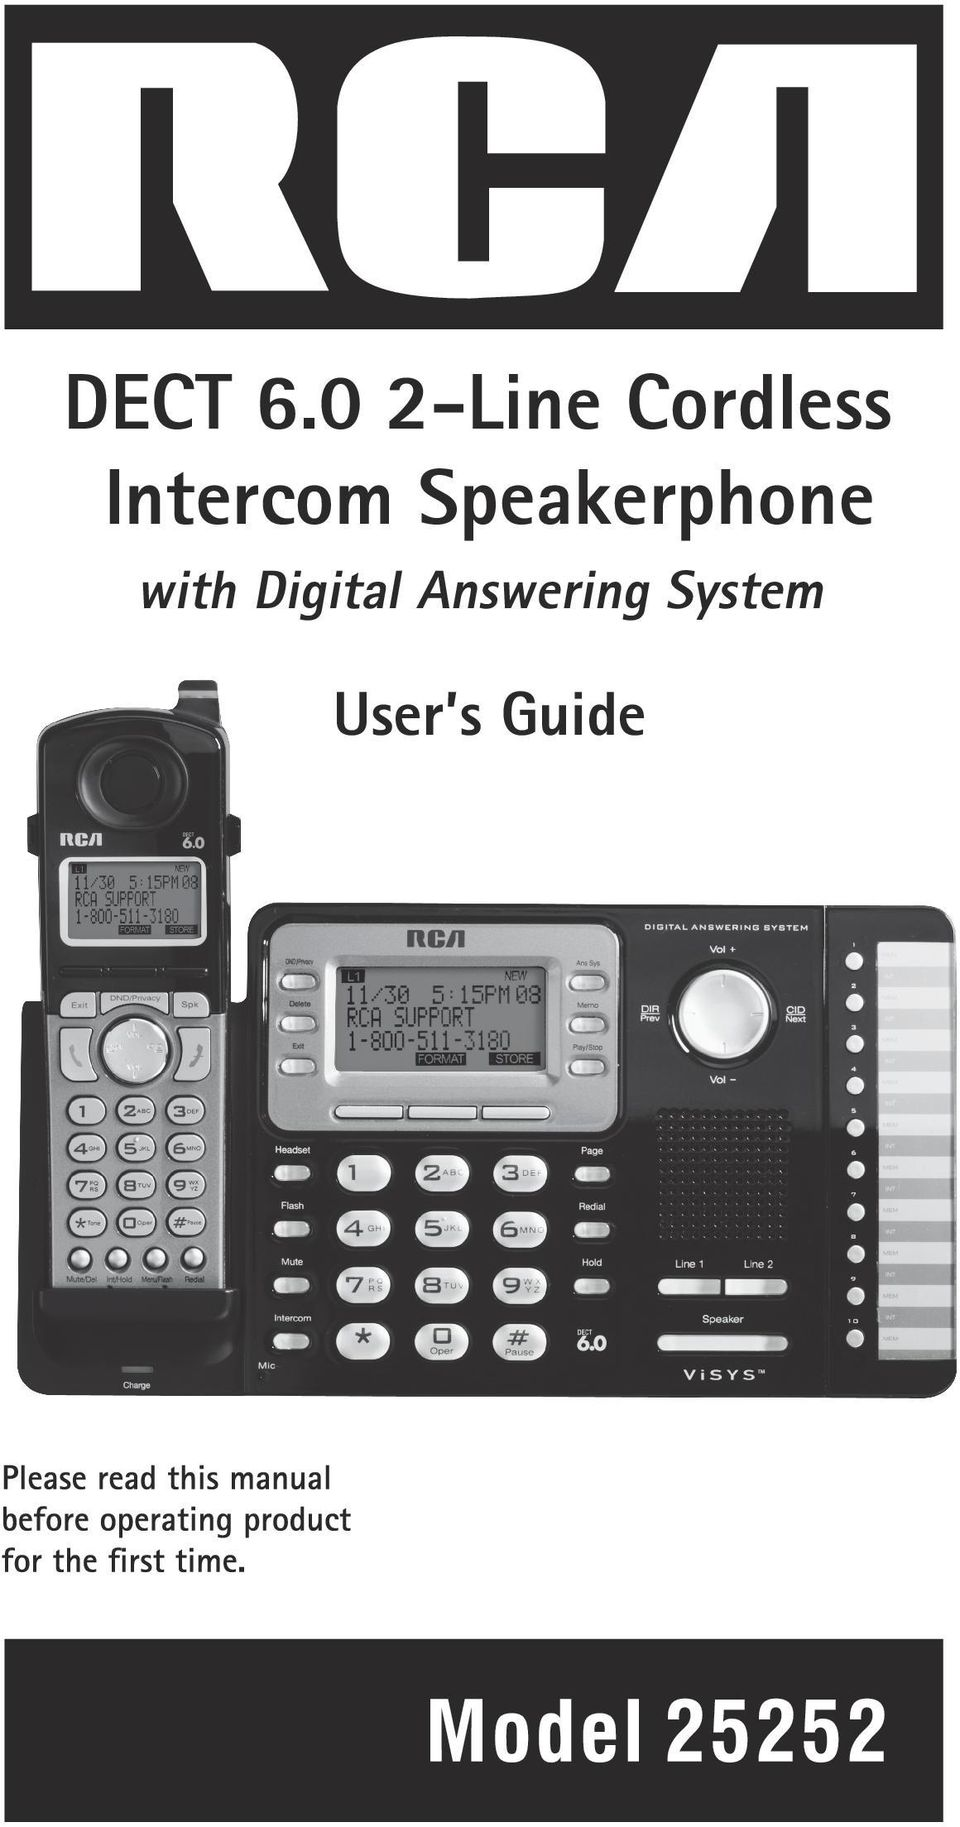 Intercom Speakerphone